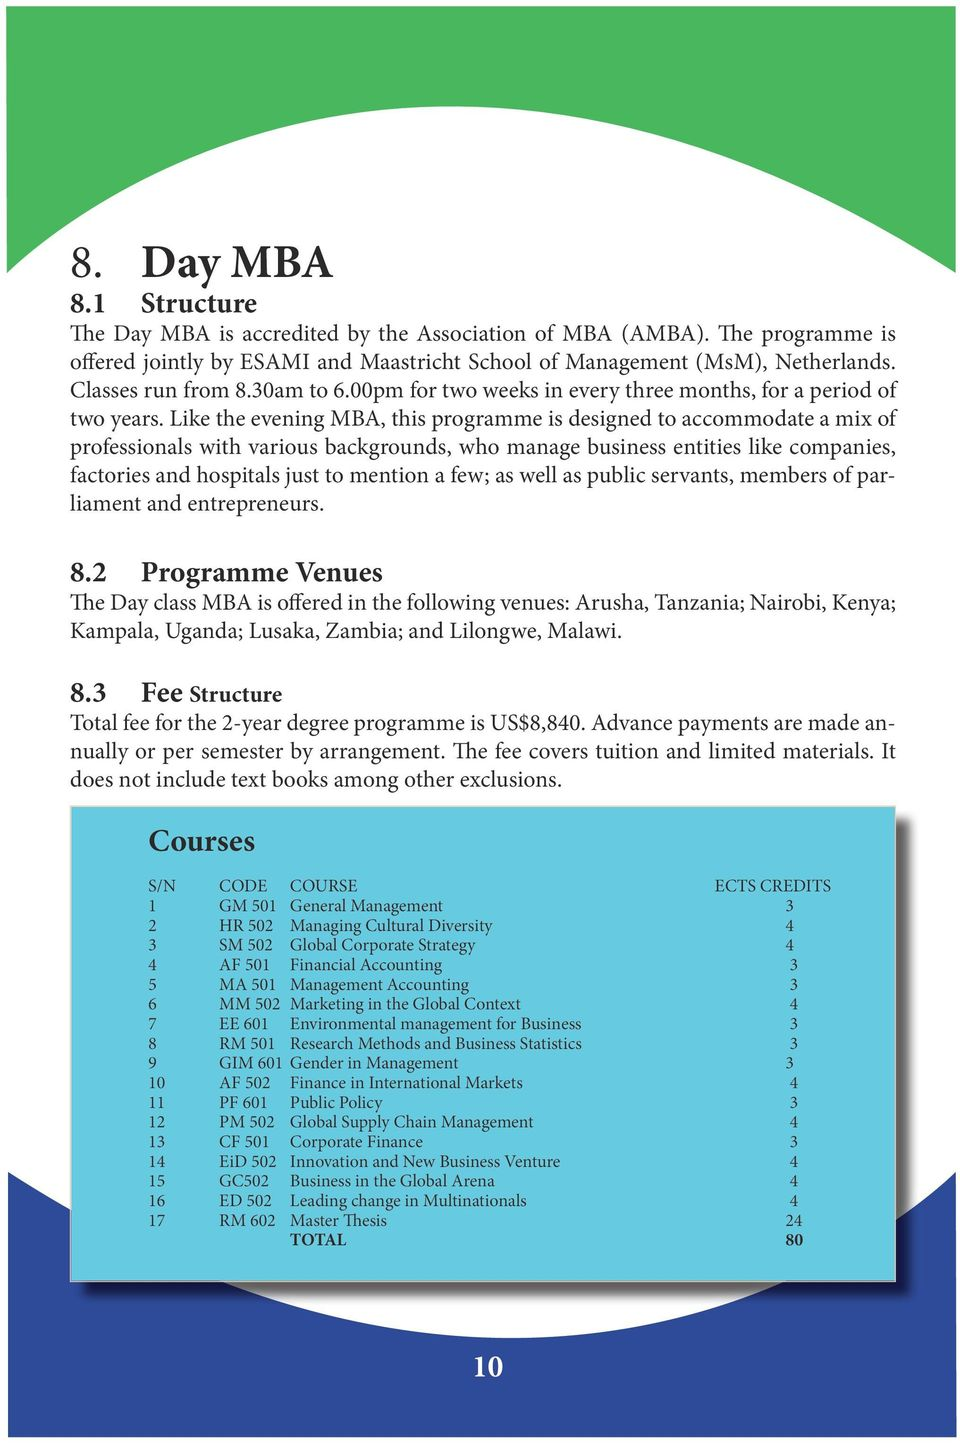 Like the evening MBA, this programme is designed to accommodate a mix of professionals with various backgrounds, who manage business entities like companies, factories and hospitals just to mention a